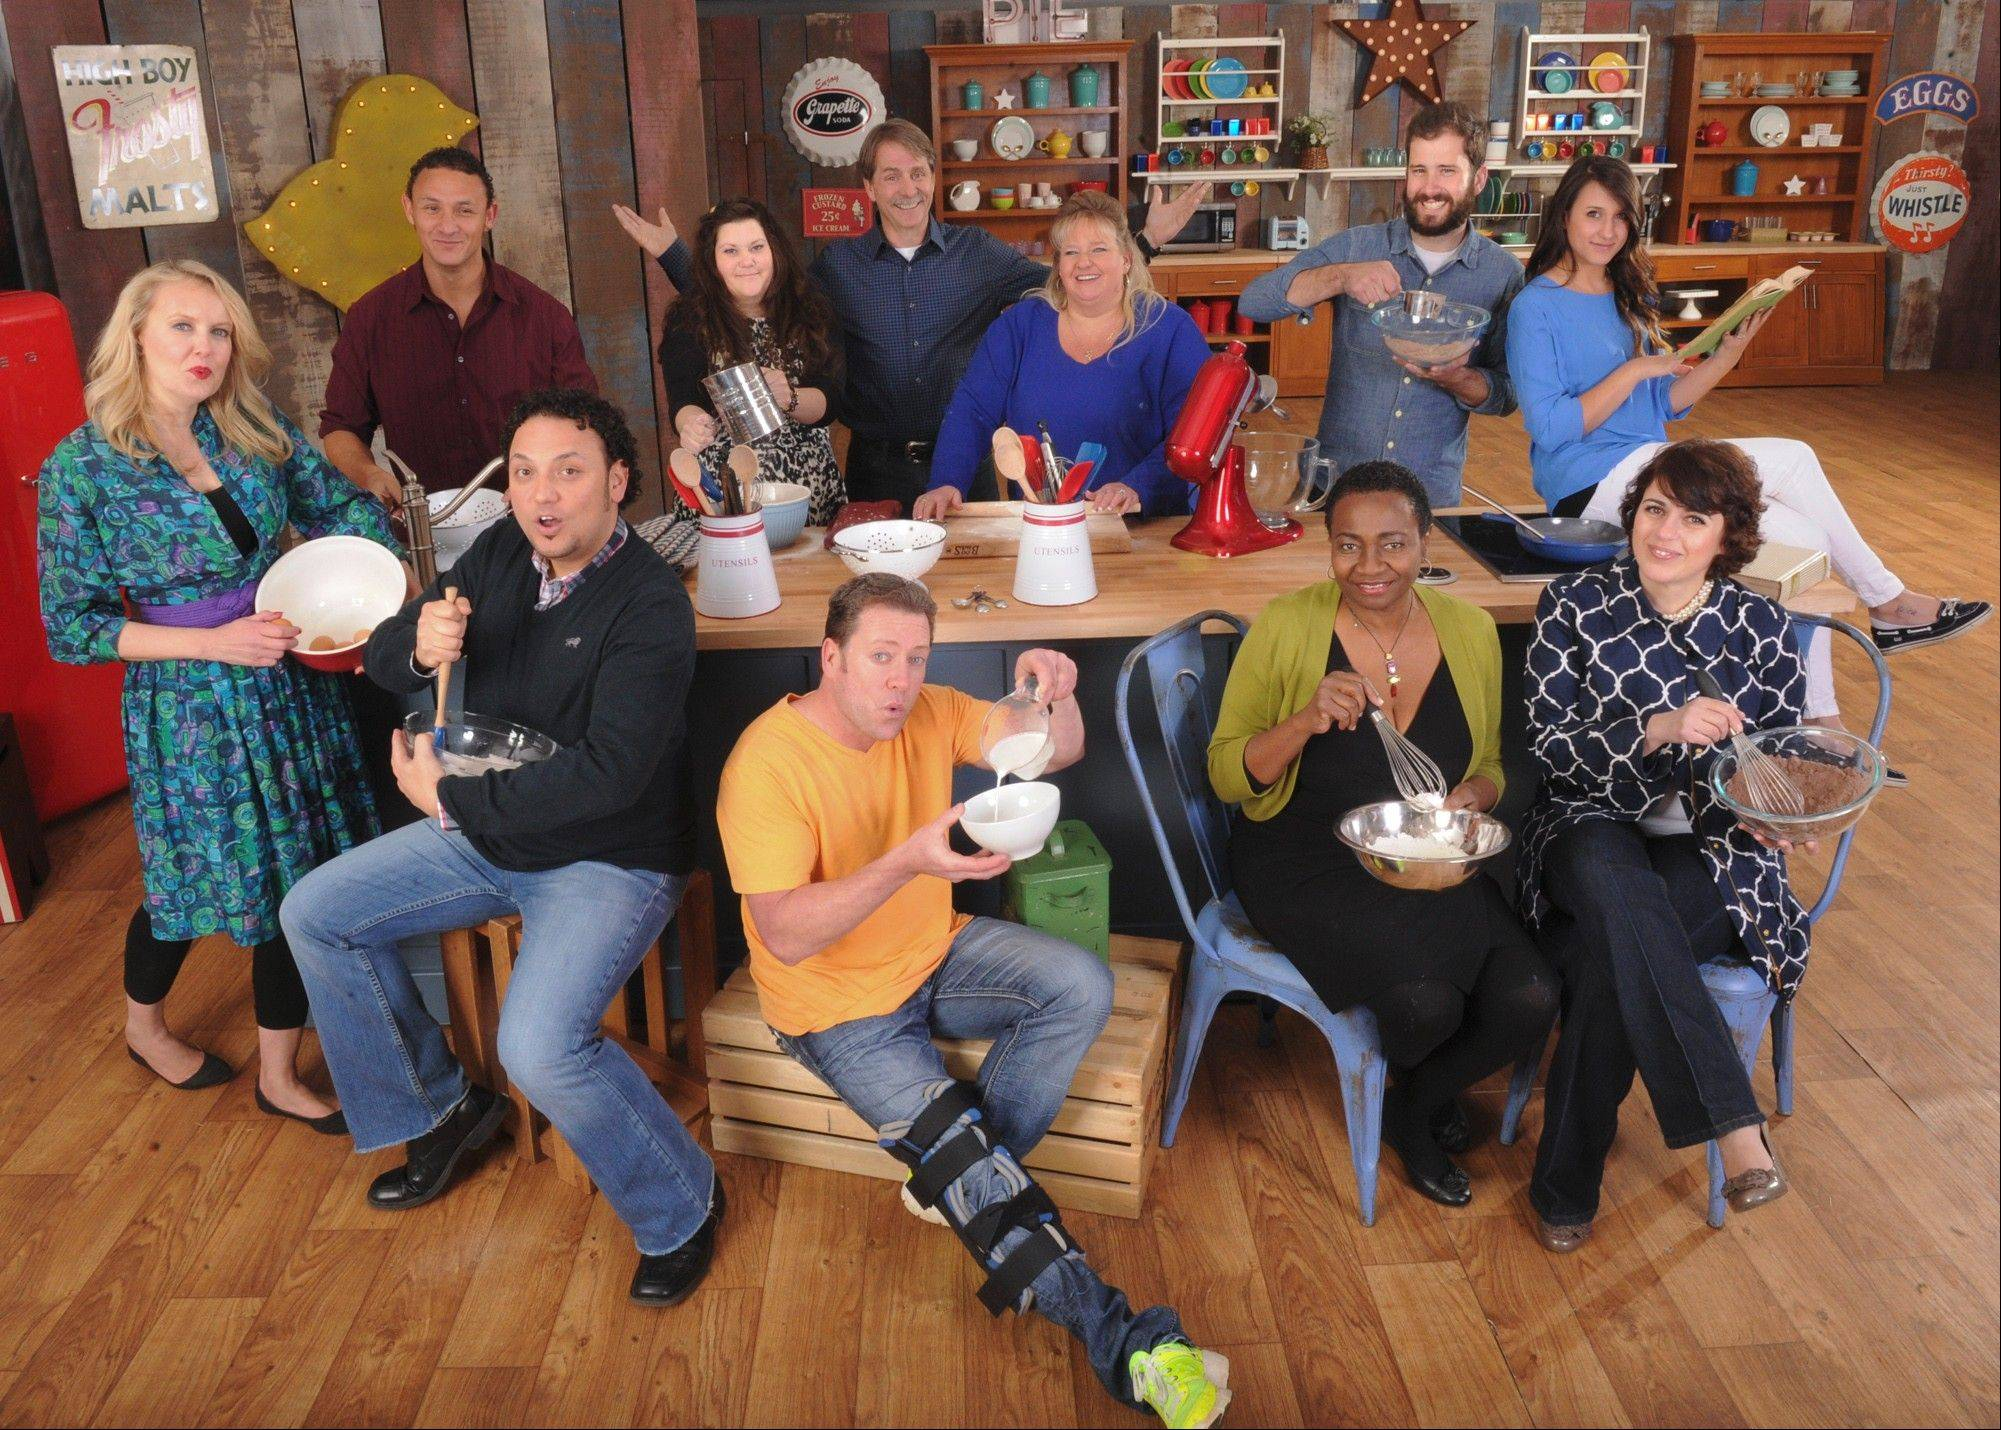 "The 10 bakers competing in CBS' new competition reality series ""The American Baking Competition"" are: Brian Emmett (center with knee brace), Carlo Fuda, clockwise from top, Darlene Pawlukowsky, Jeremy Cross, Kolette Biddle, host Jeff Foxworthy, Francine Bryson, James Reddick, Whitney Appleton Beery, Effie D. Sahihi and Elaine Francisco."